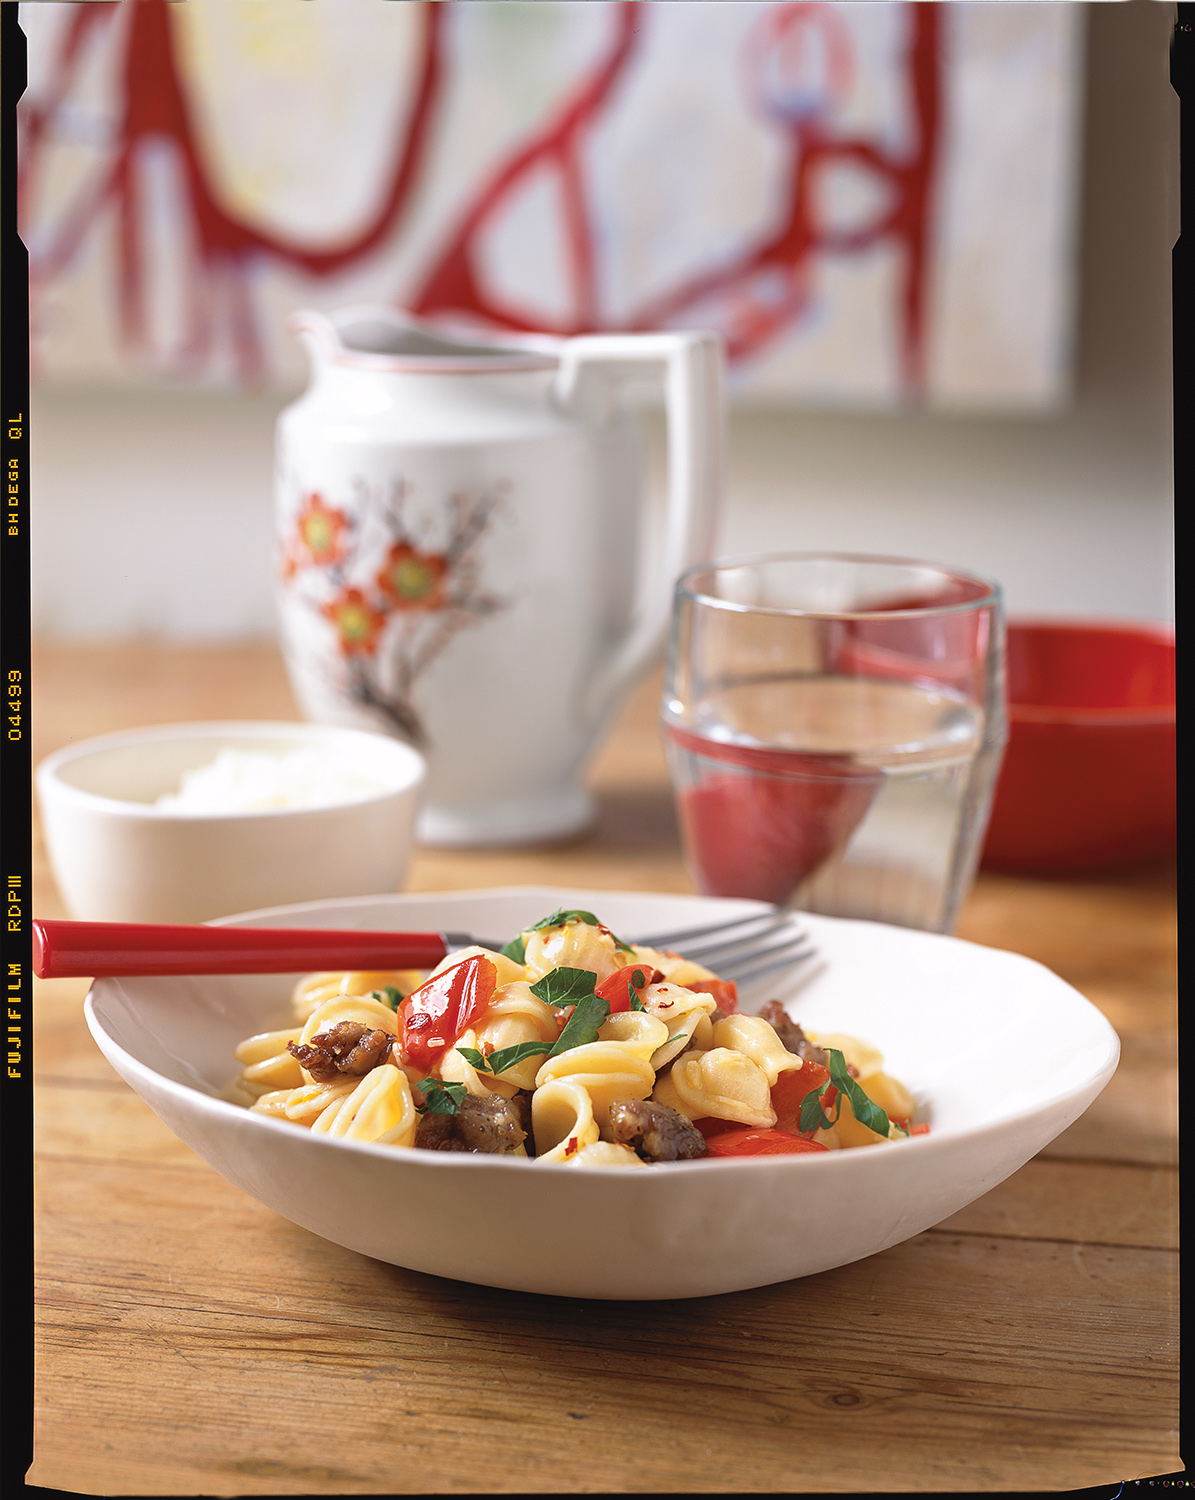 pasta-with-olive-oil-garlic-crushed-red-pepper